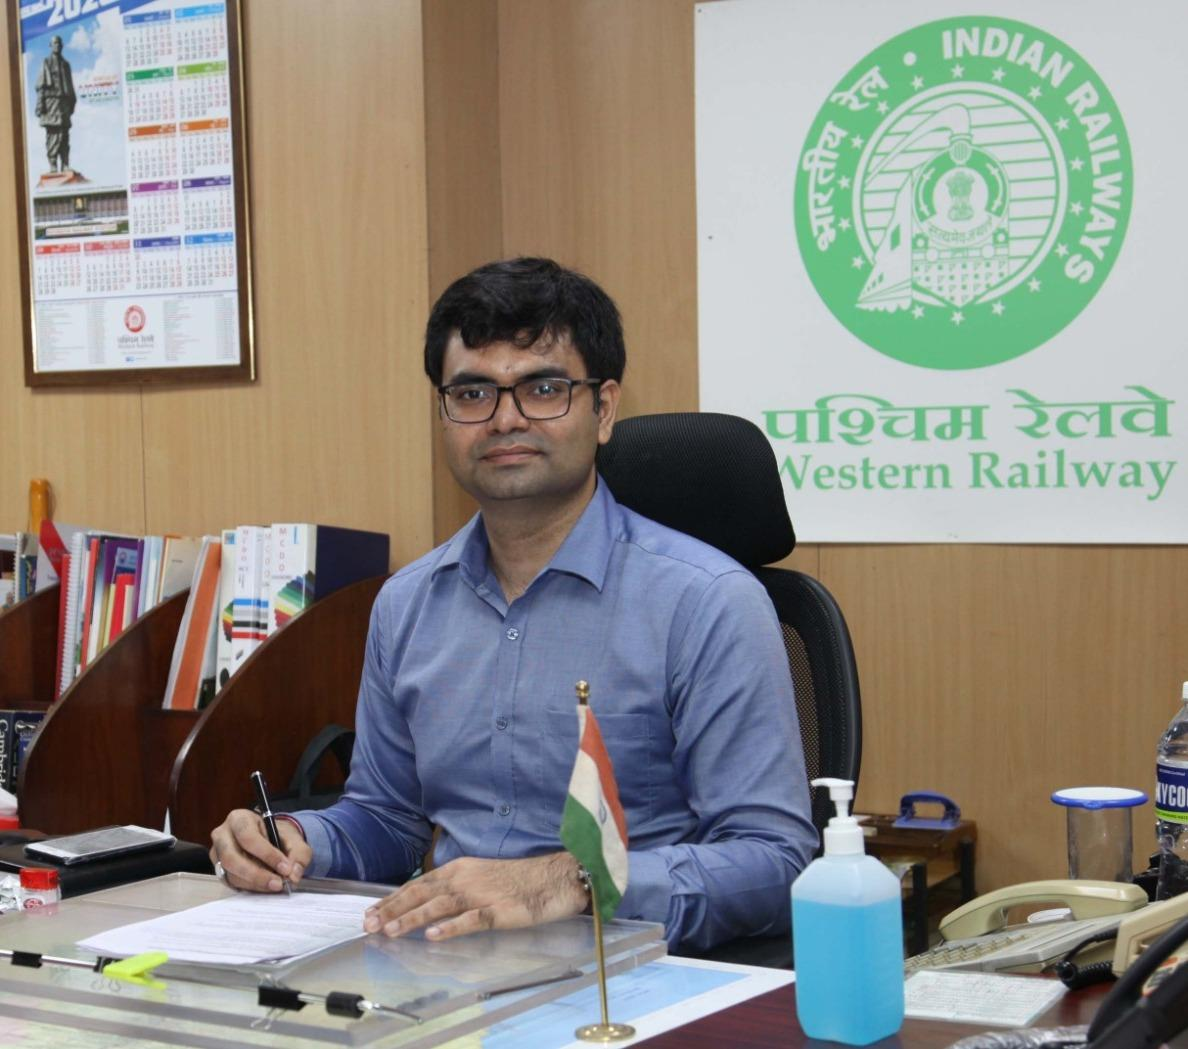 Sumit Thakur takes over as new CPRO of Western Railway